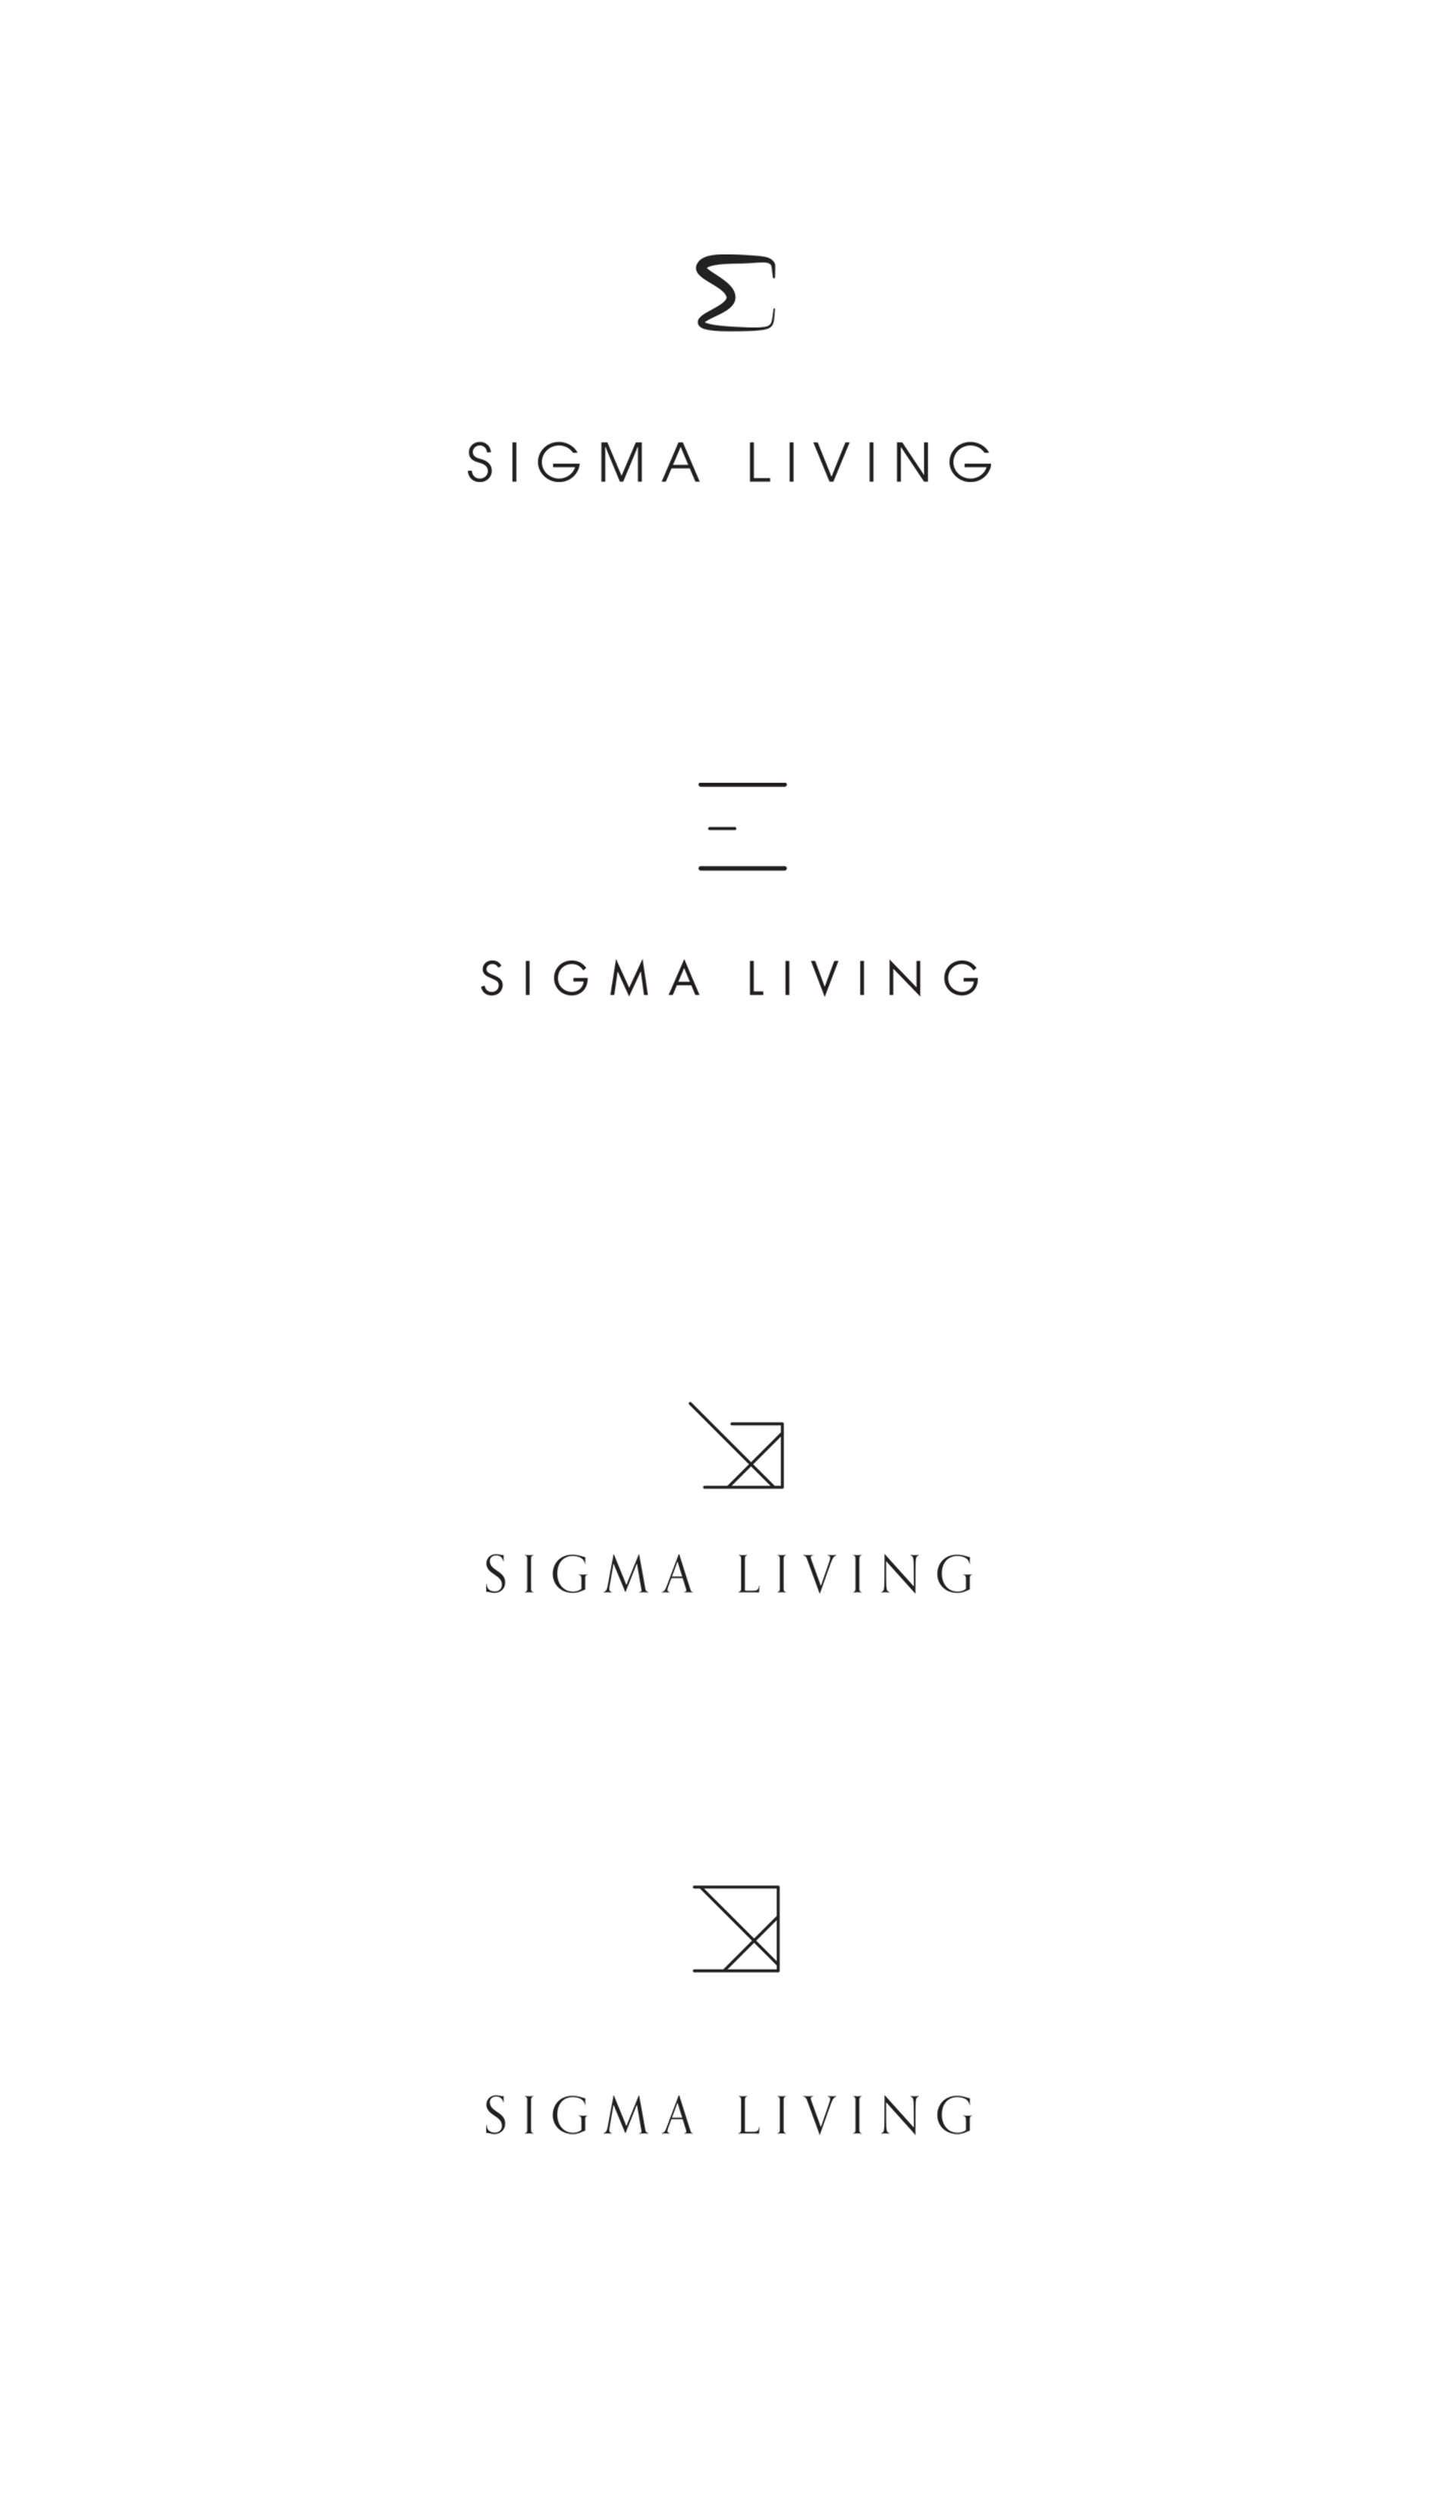 Logo suggestions early work